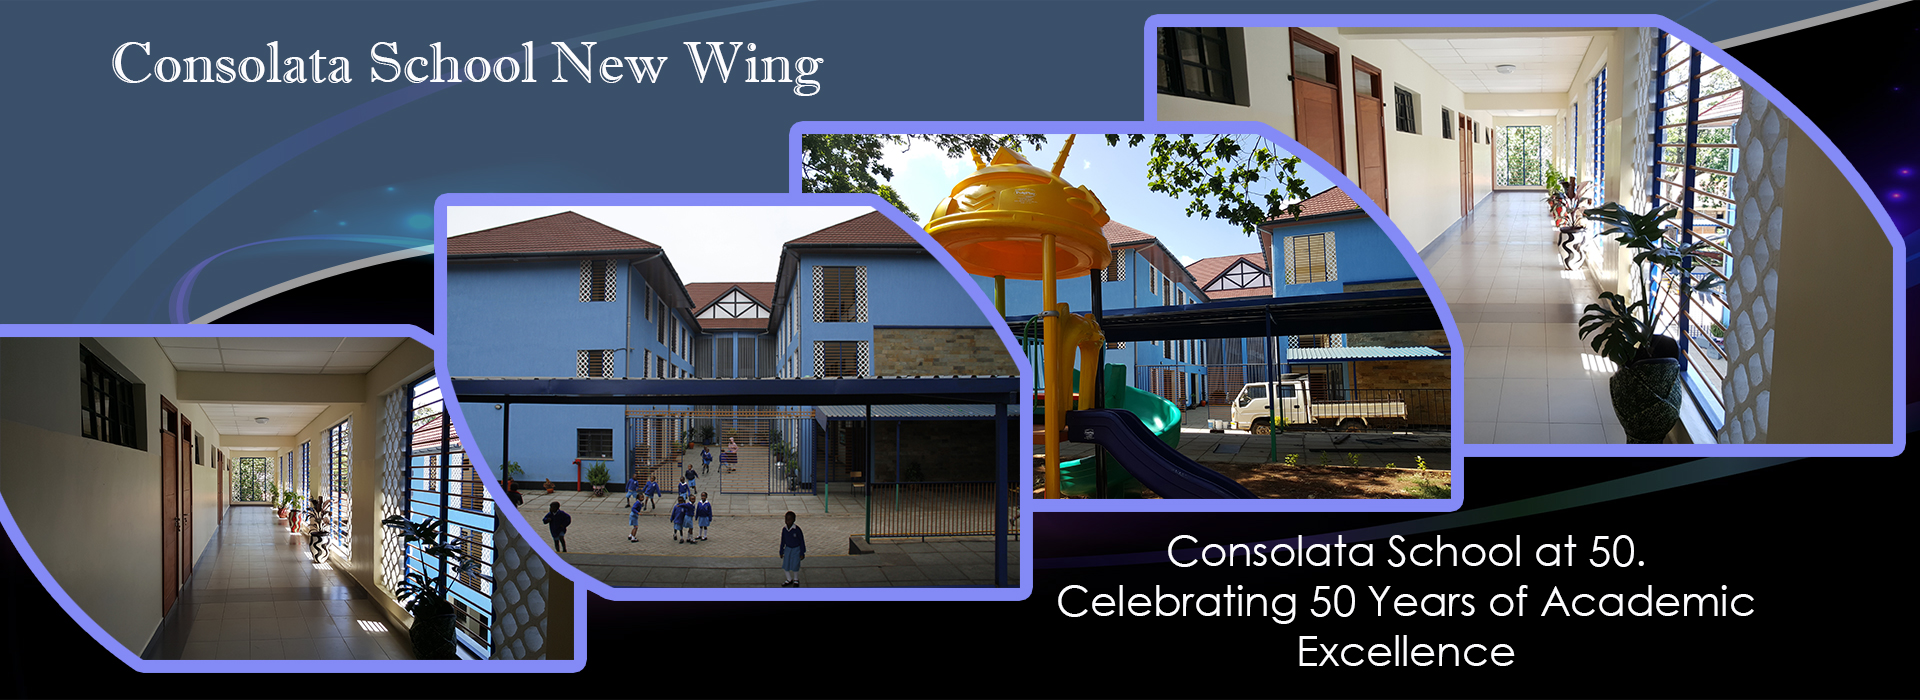 New-wing